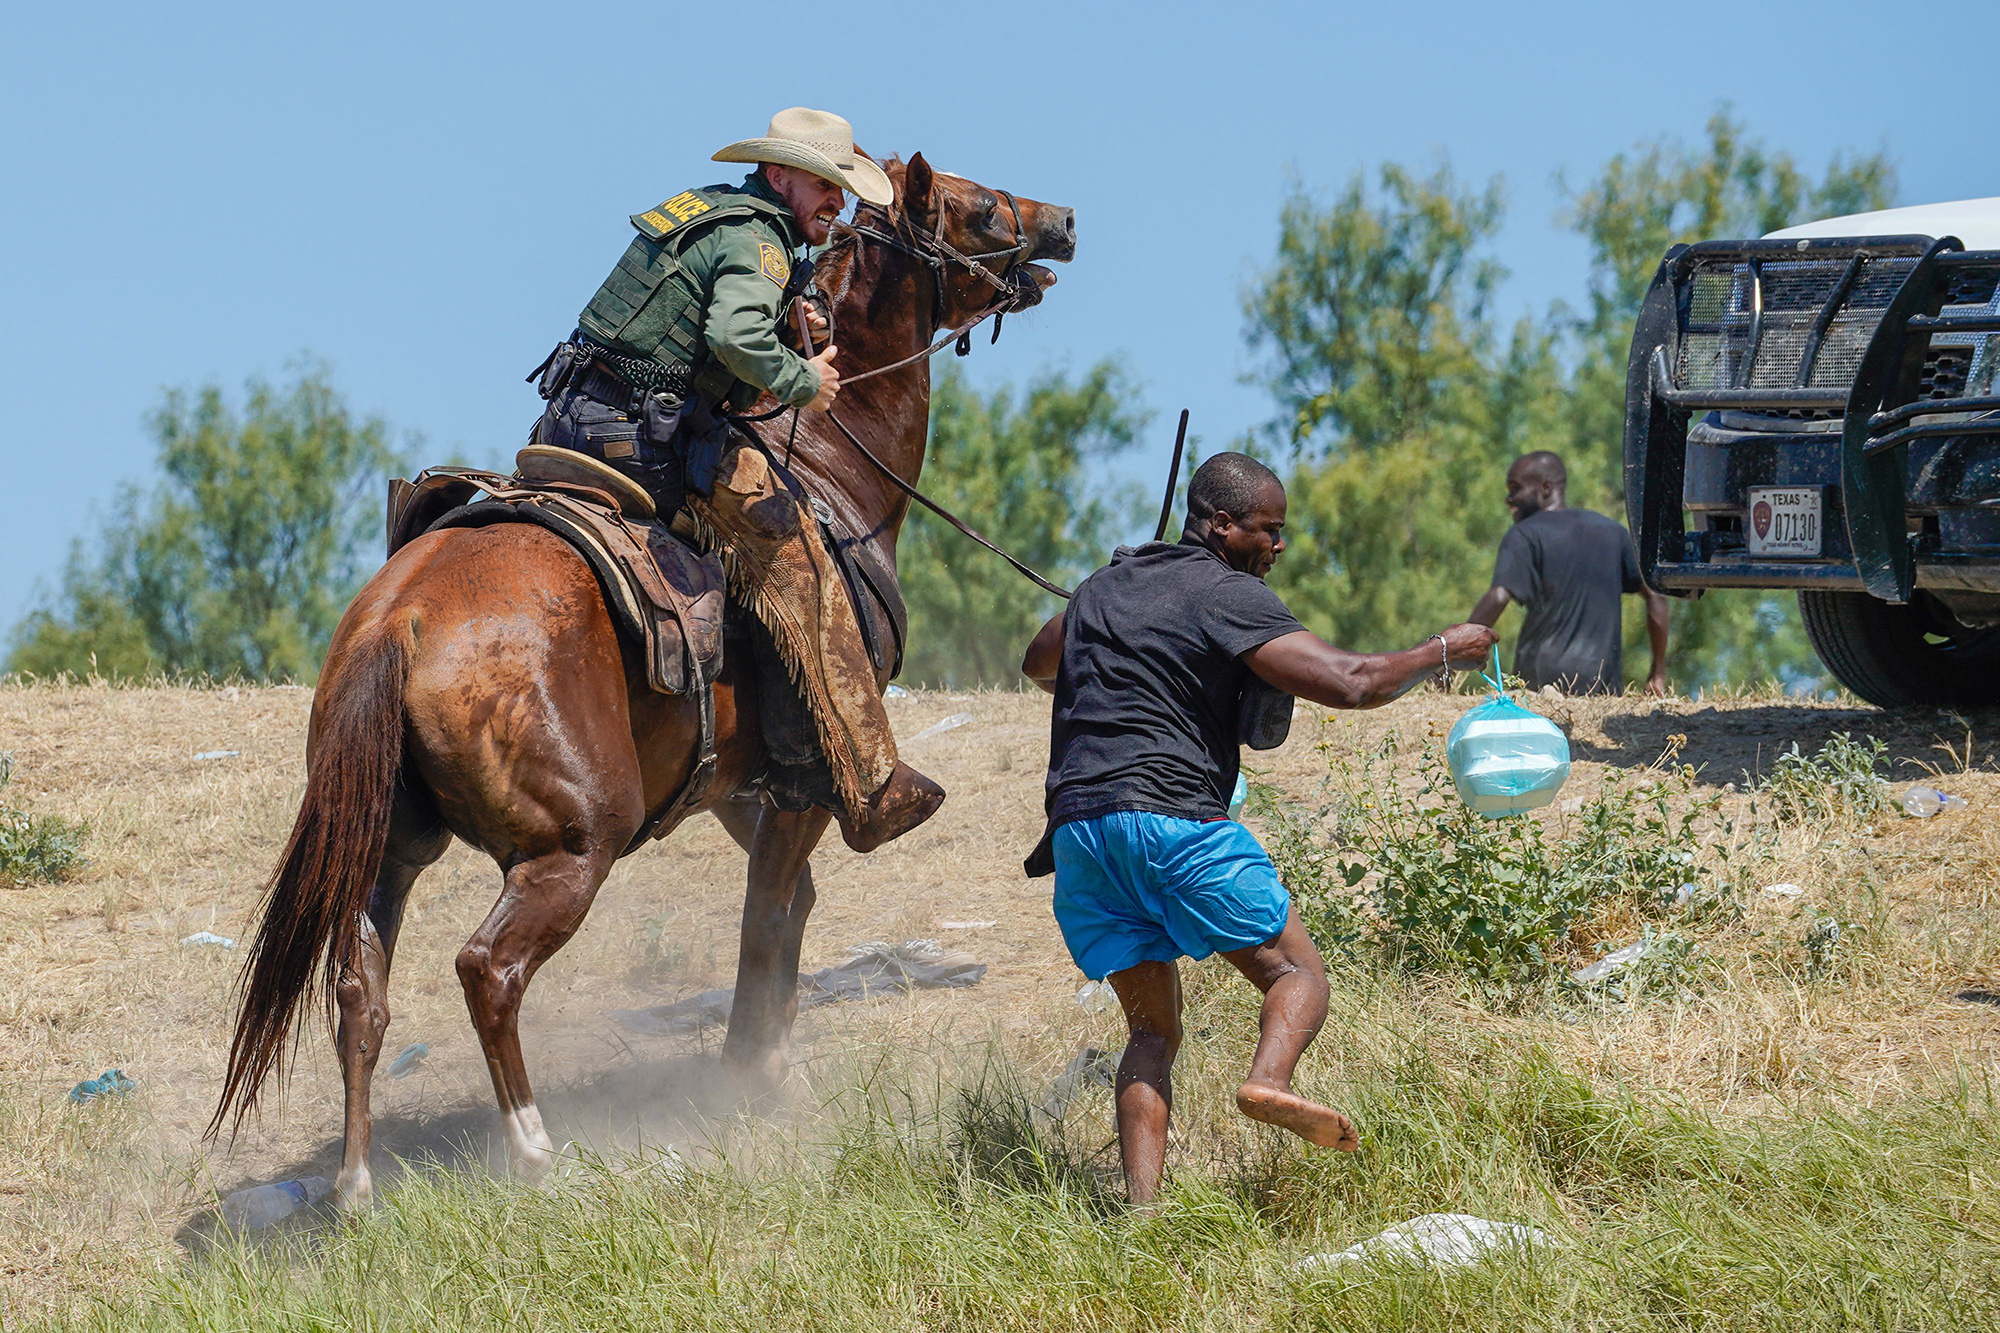 A Border Patrol agent on horseback attempting to stop a migrant from entering the encampment near Del Rio on September 19, 2021.